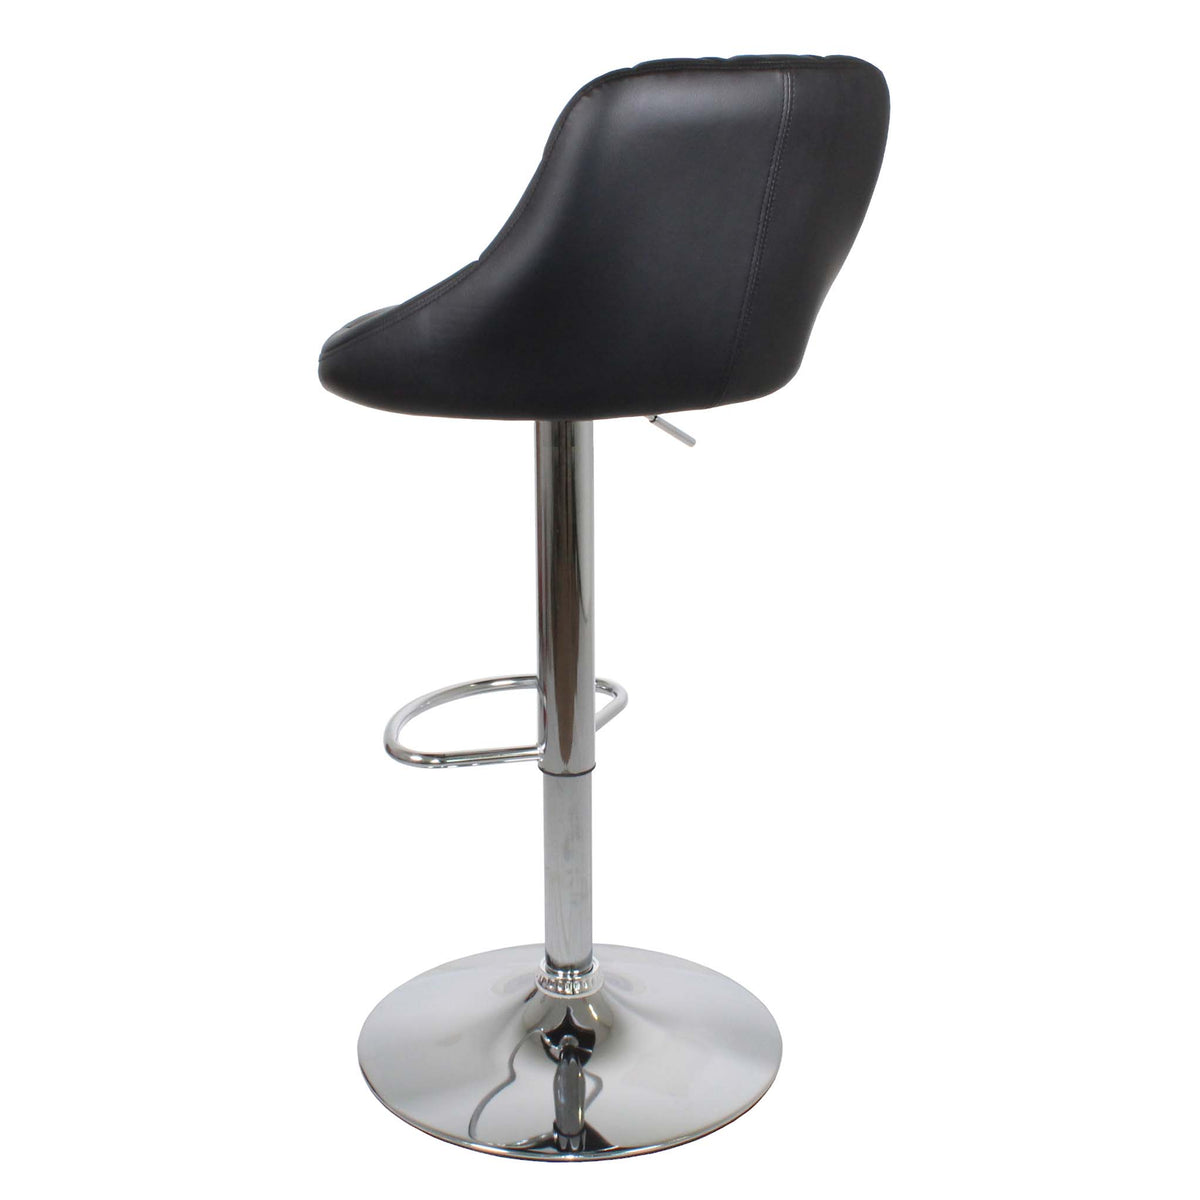 Back view of the Shadow Grey Abberley Adjustable Breakfast Bar Stool from Roseland Furniture